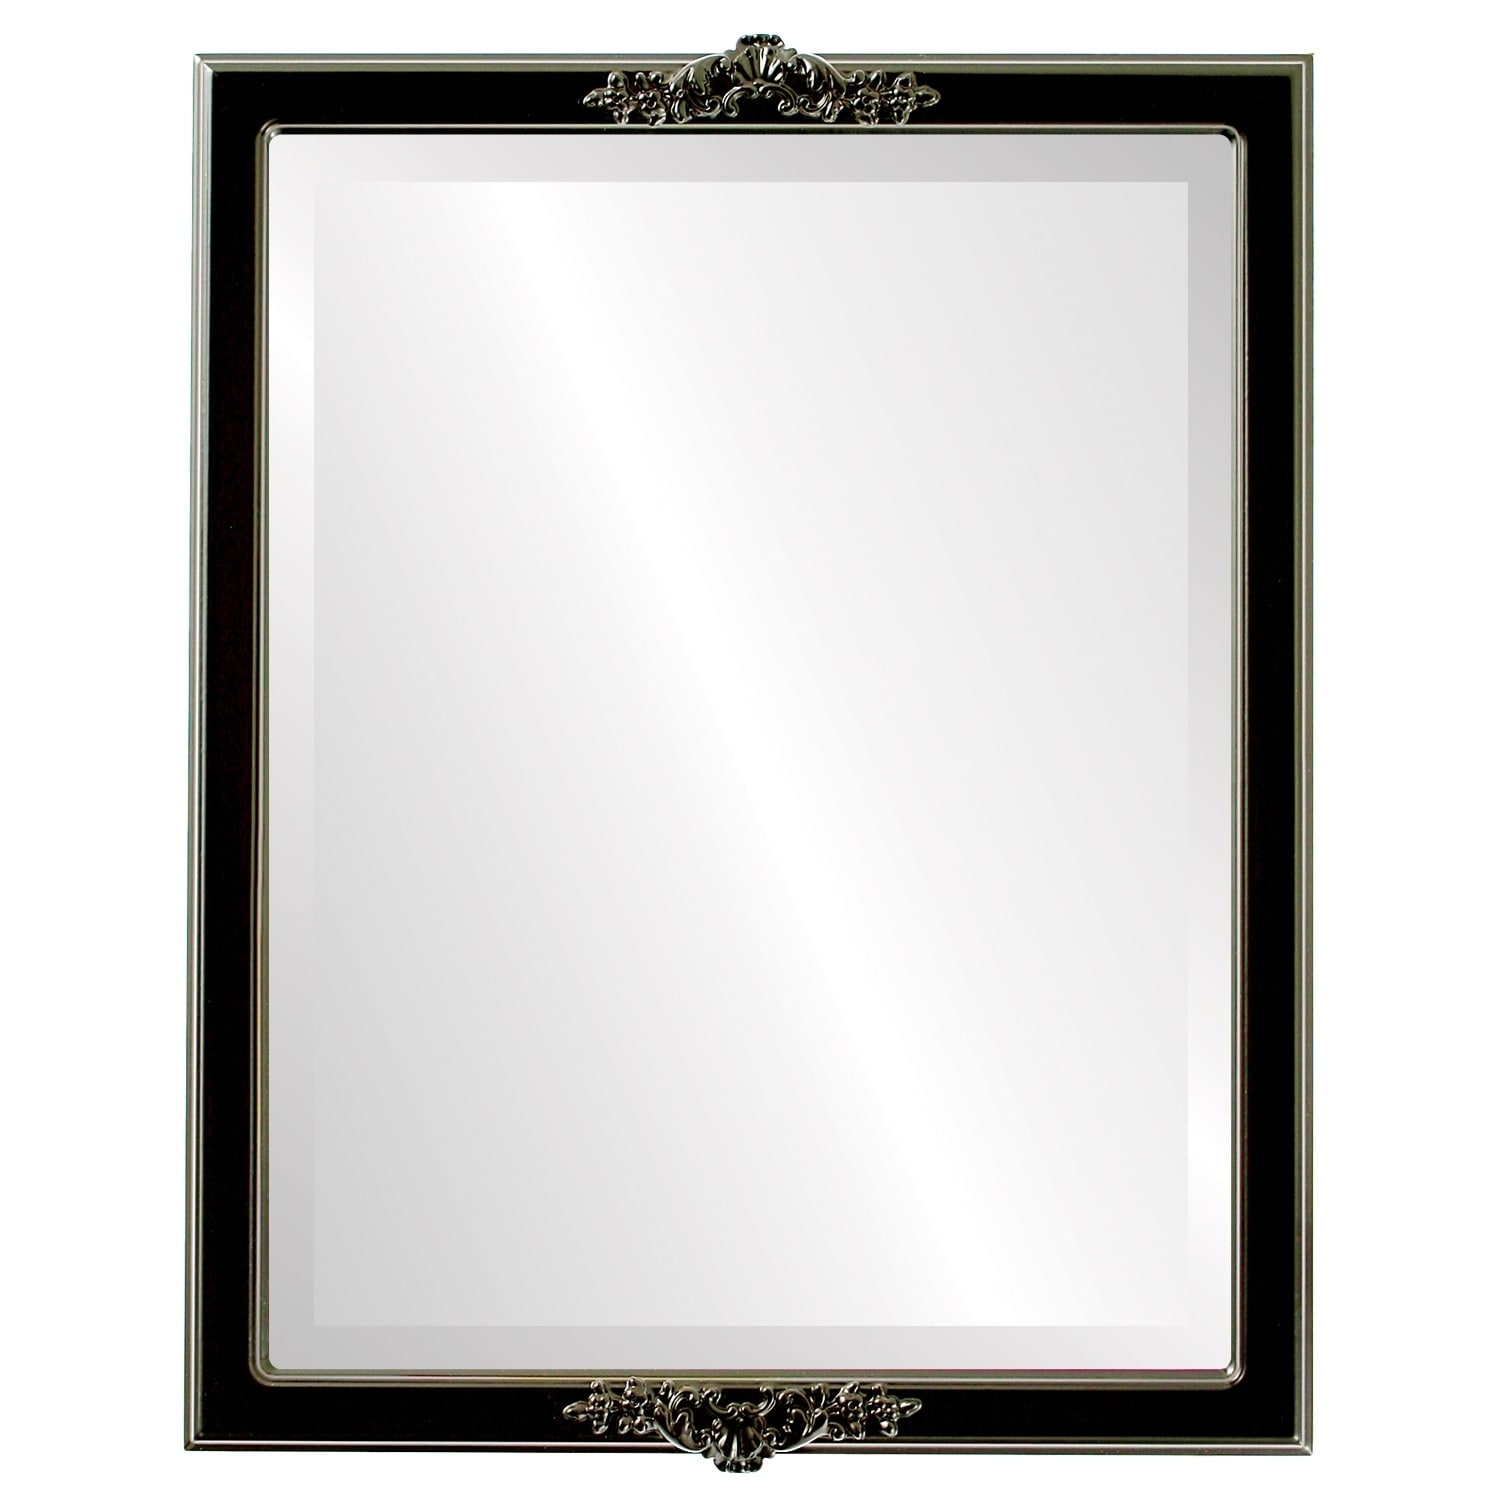 Athena Framed Rectangle Mirror in Gloss Black (13x17)